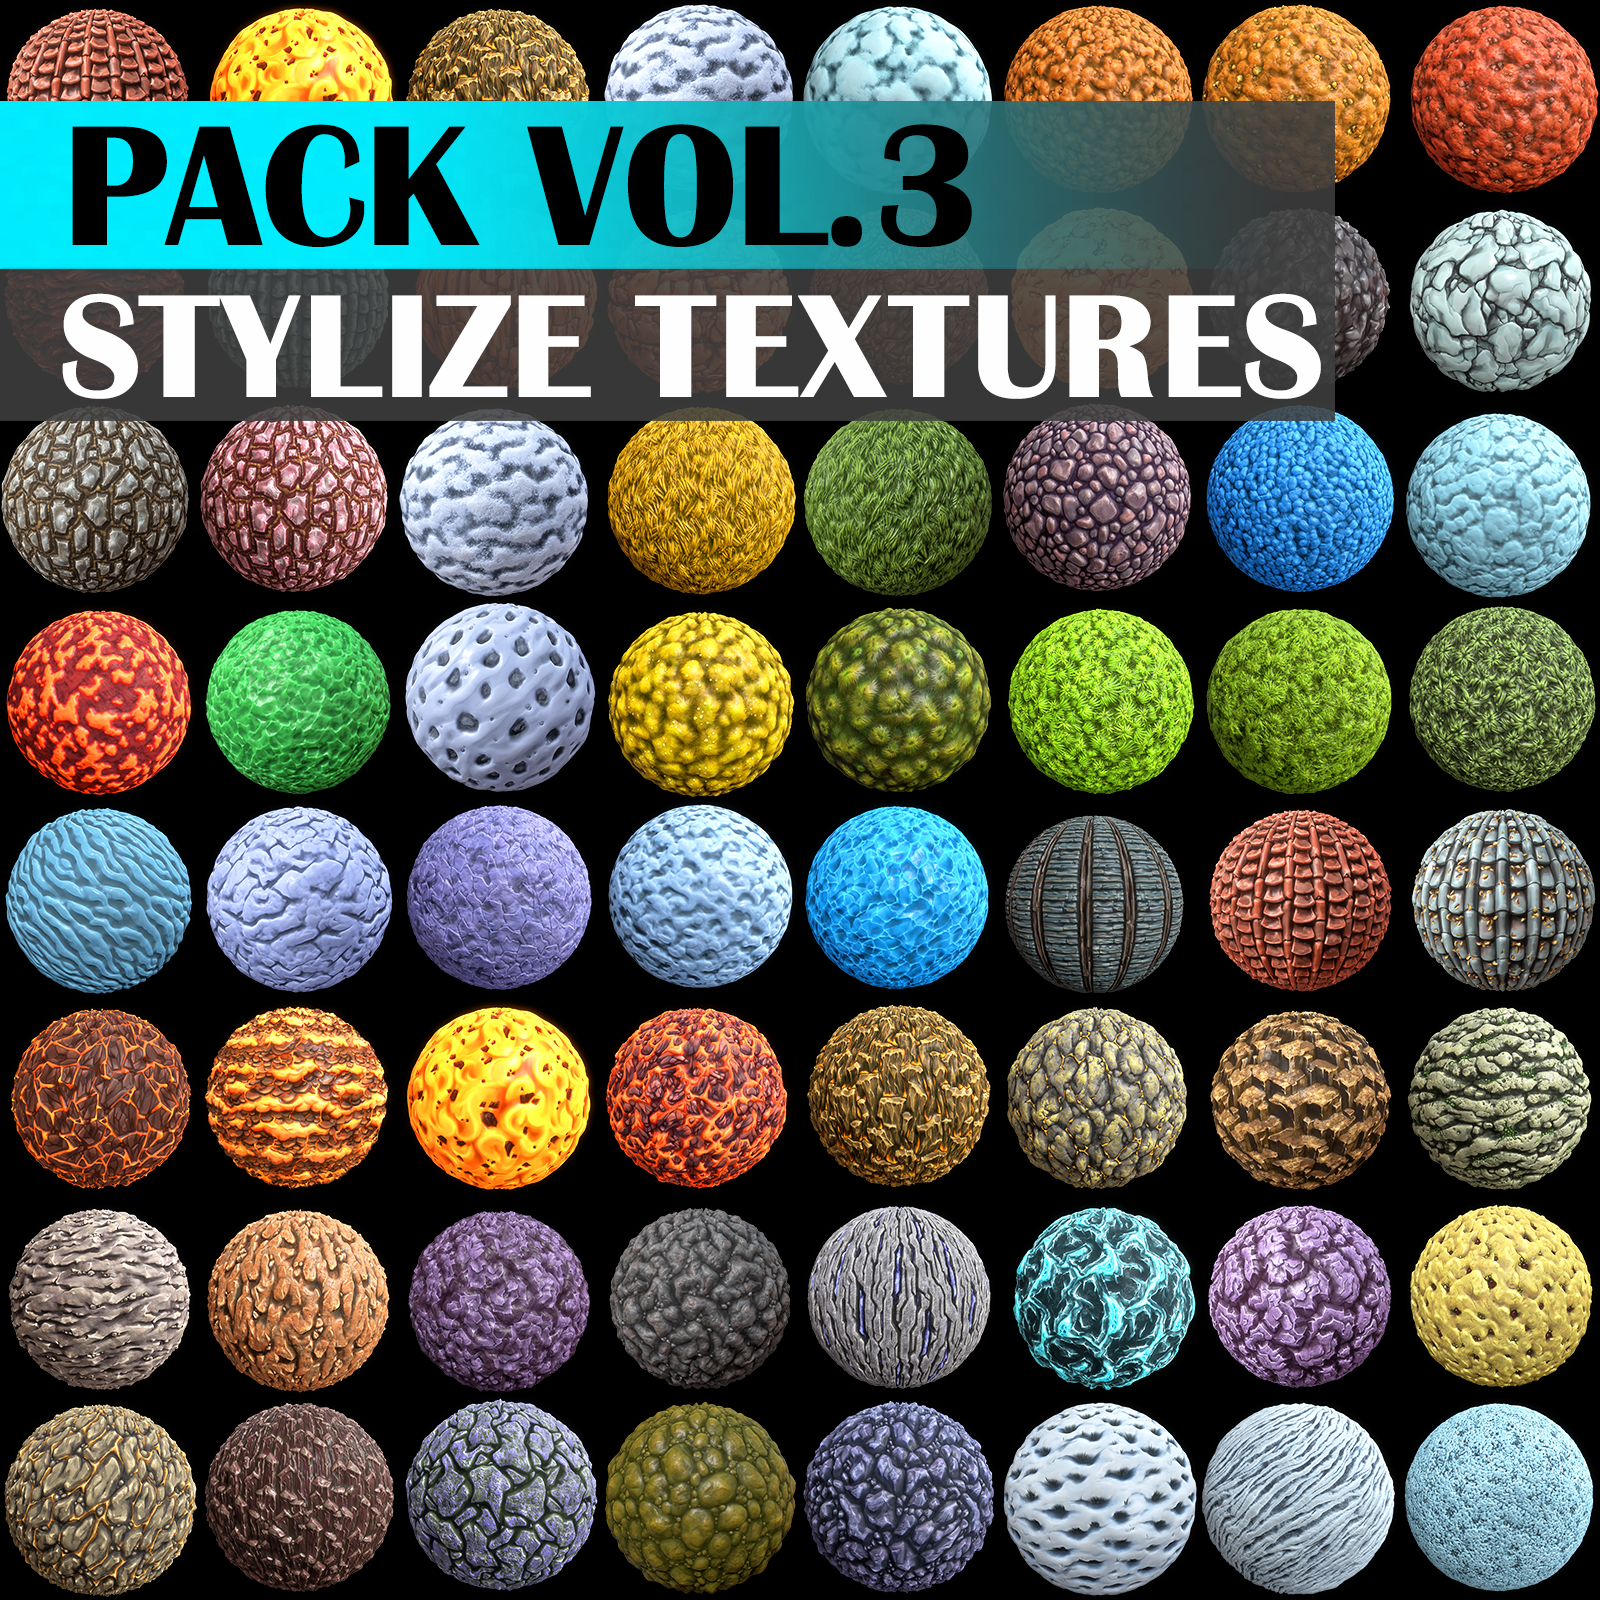 Stylized Texture Pack - VOL 3 - LowlyPoly